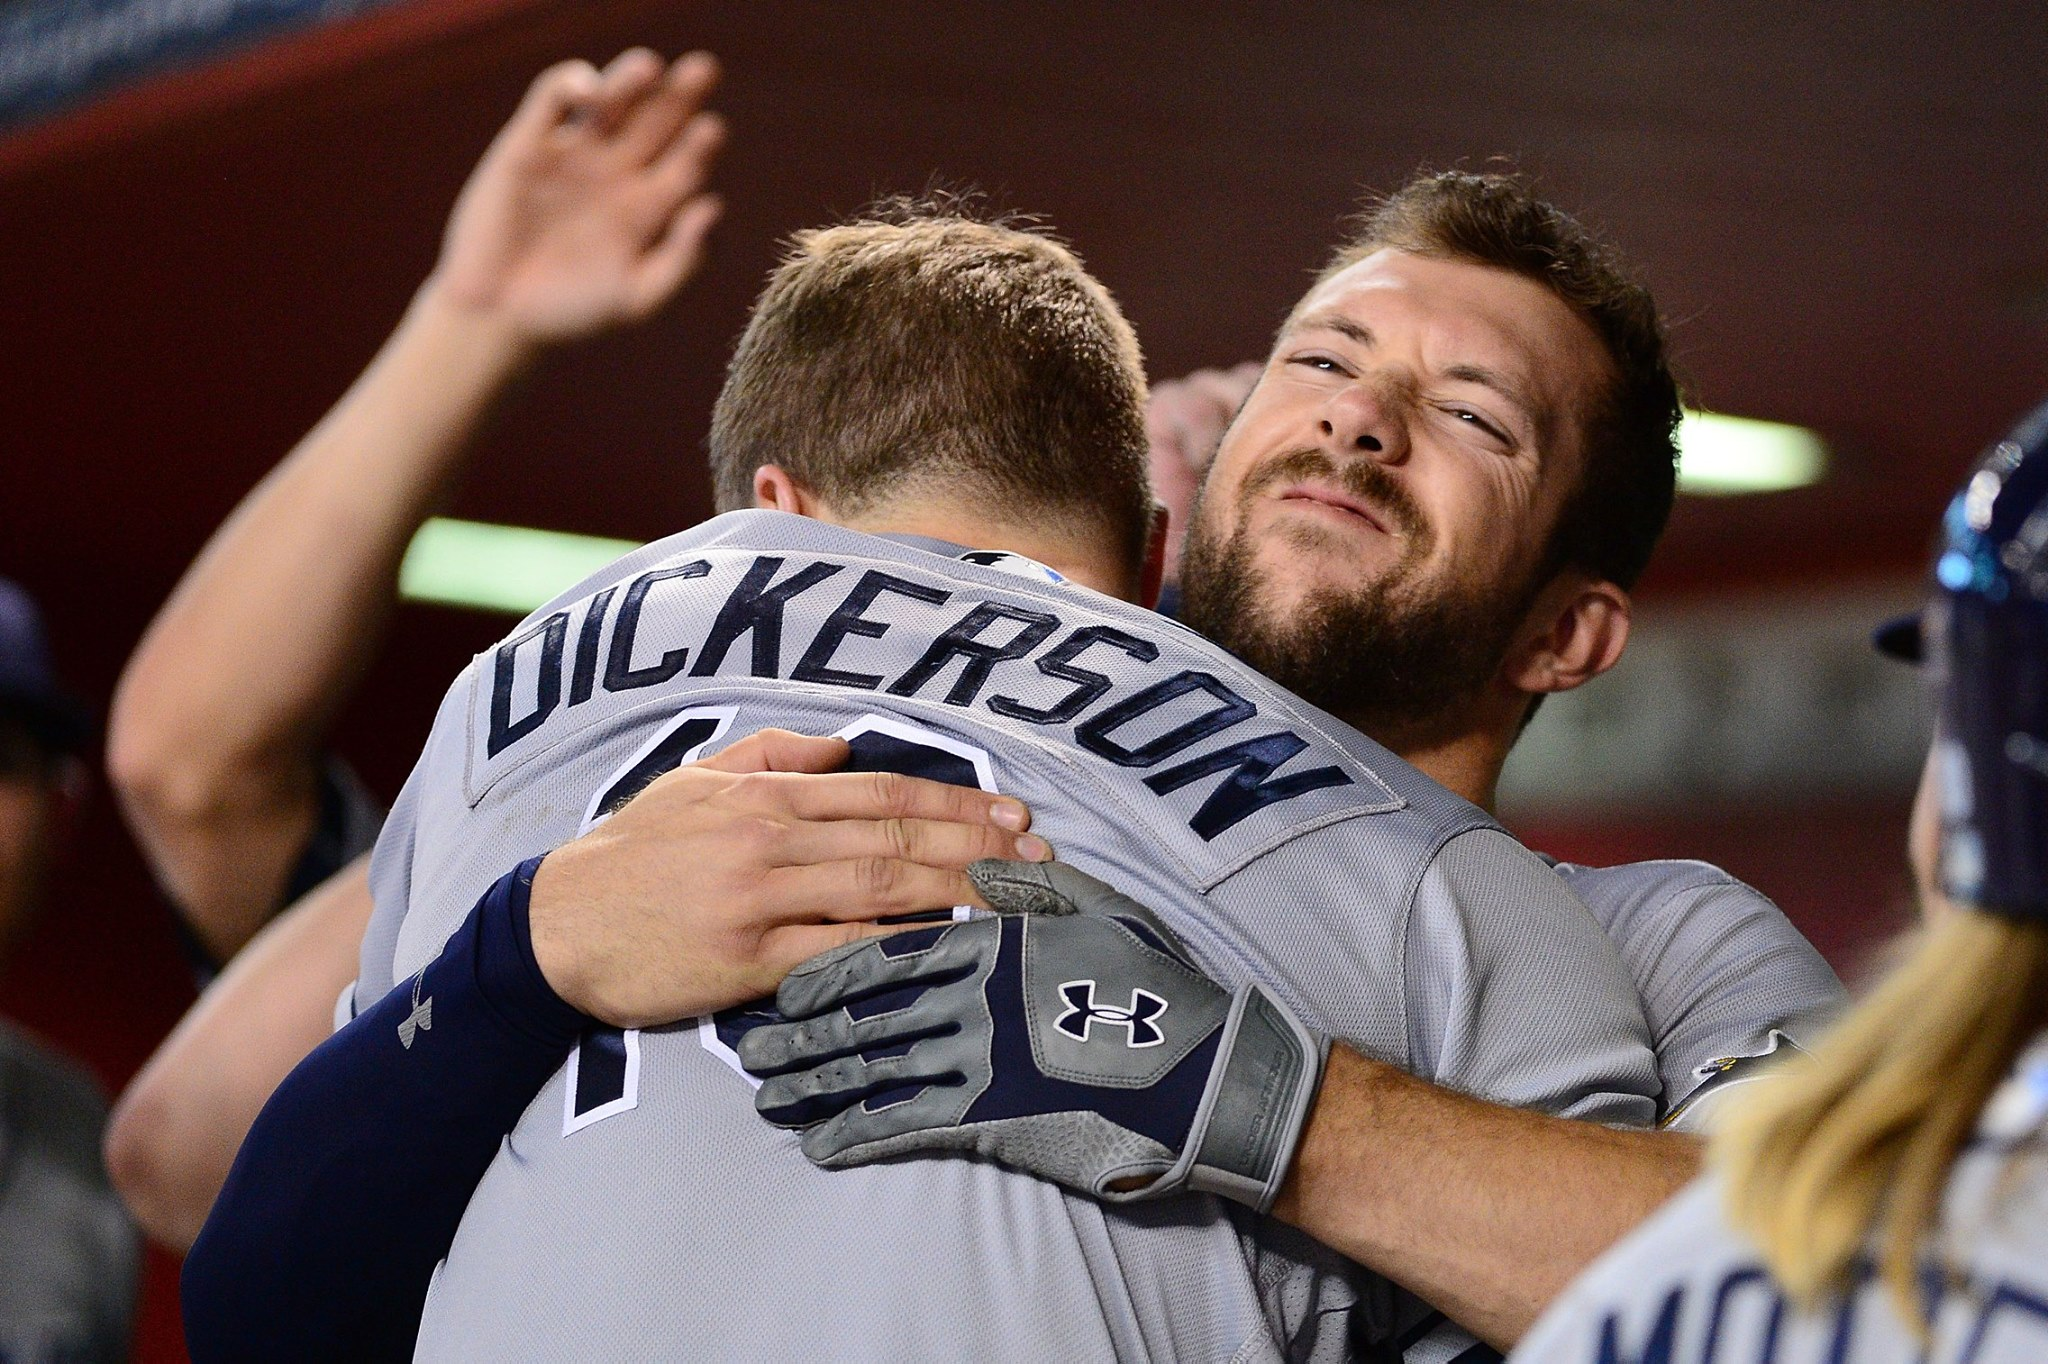 Corey Dickerson, enveloped by Steven Souza Jr., hit two homers in the series finale against the Arizona Diamondbacks. (Photo Credit: Tampa Bay Rays)